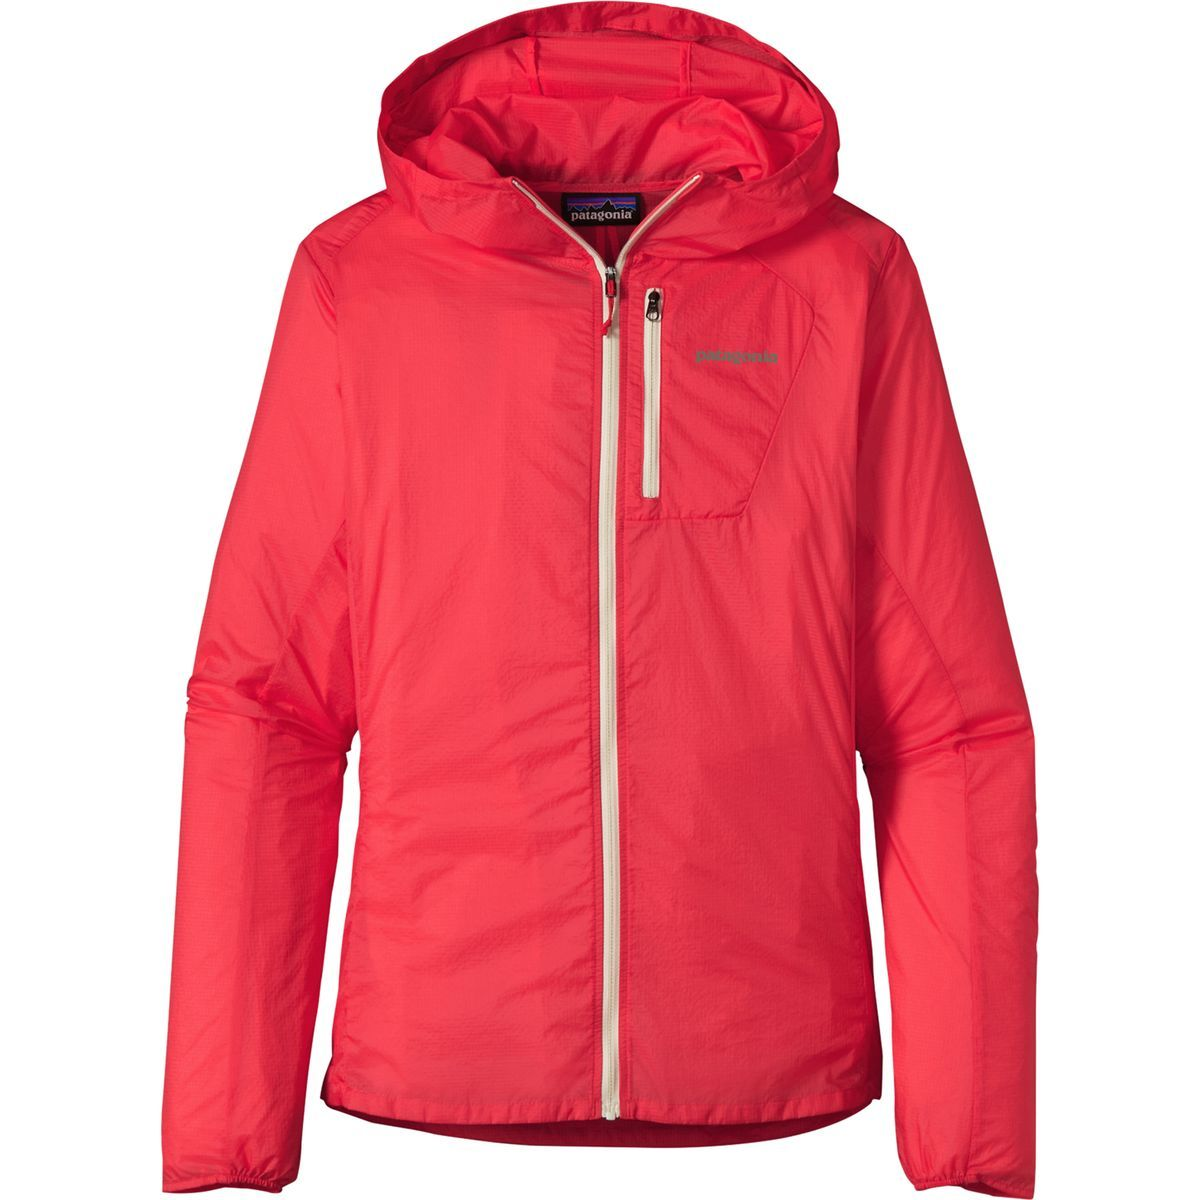 23a642d2f4a0 Patagonia Houdini Jacket - Women s Shock Pink